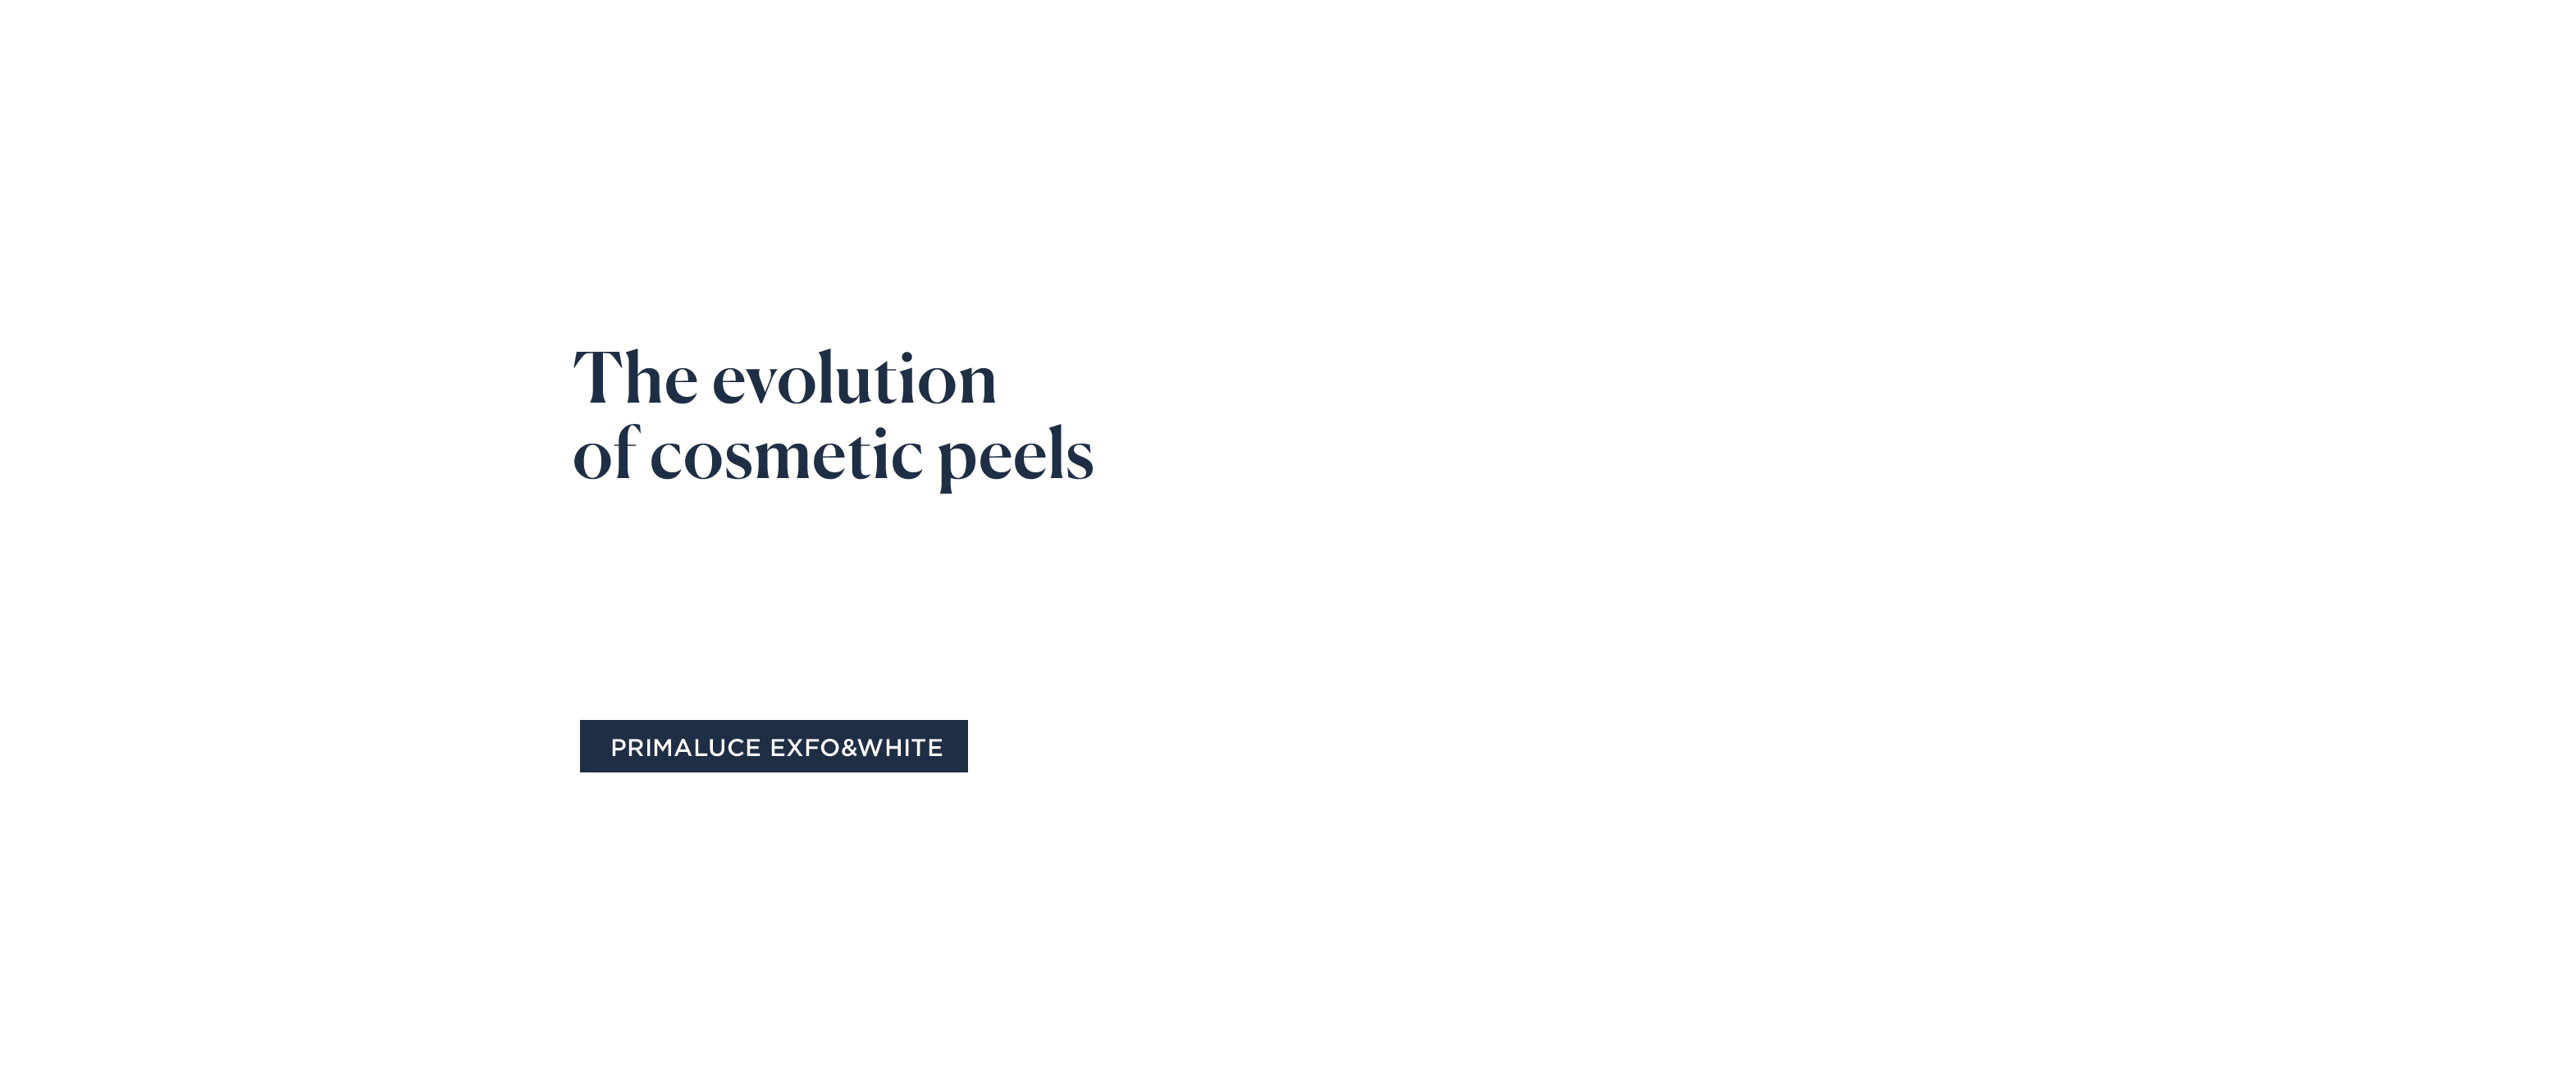 PRIMALUCE EXFO&WHITE - The evolution of cosmetic peels - Bring new light to your skin